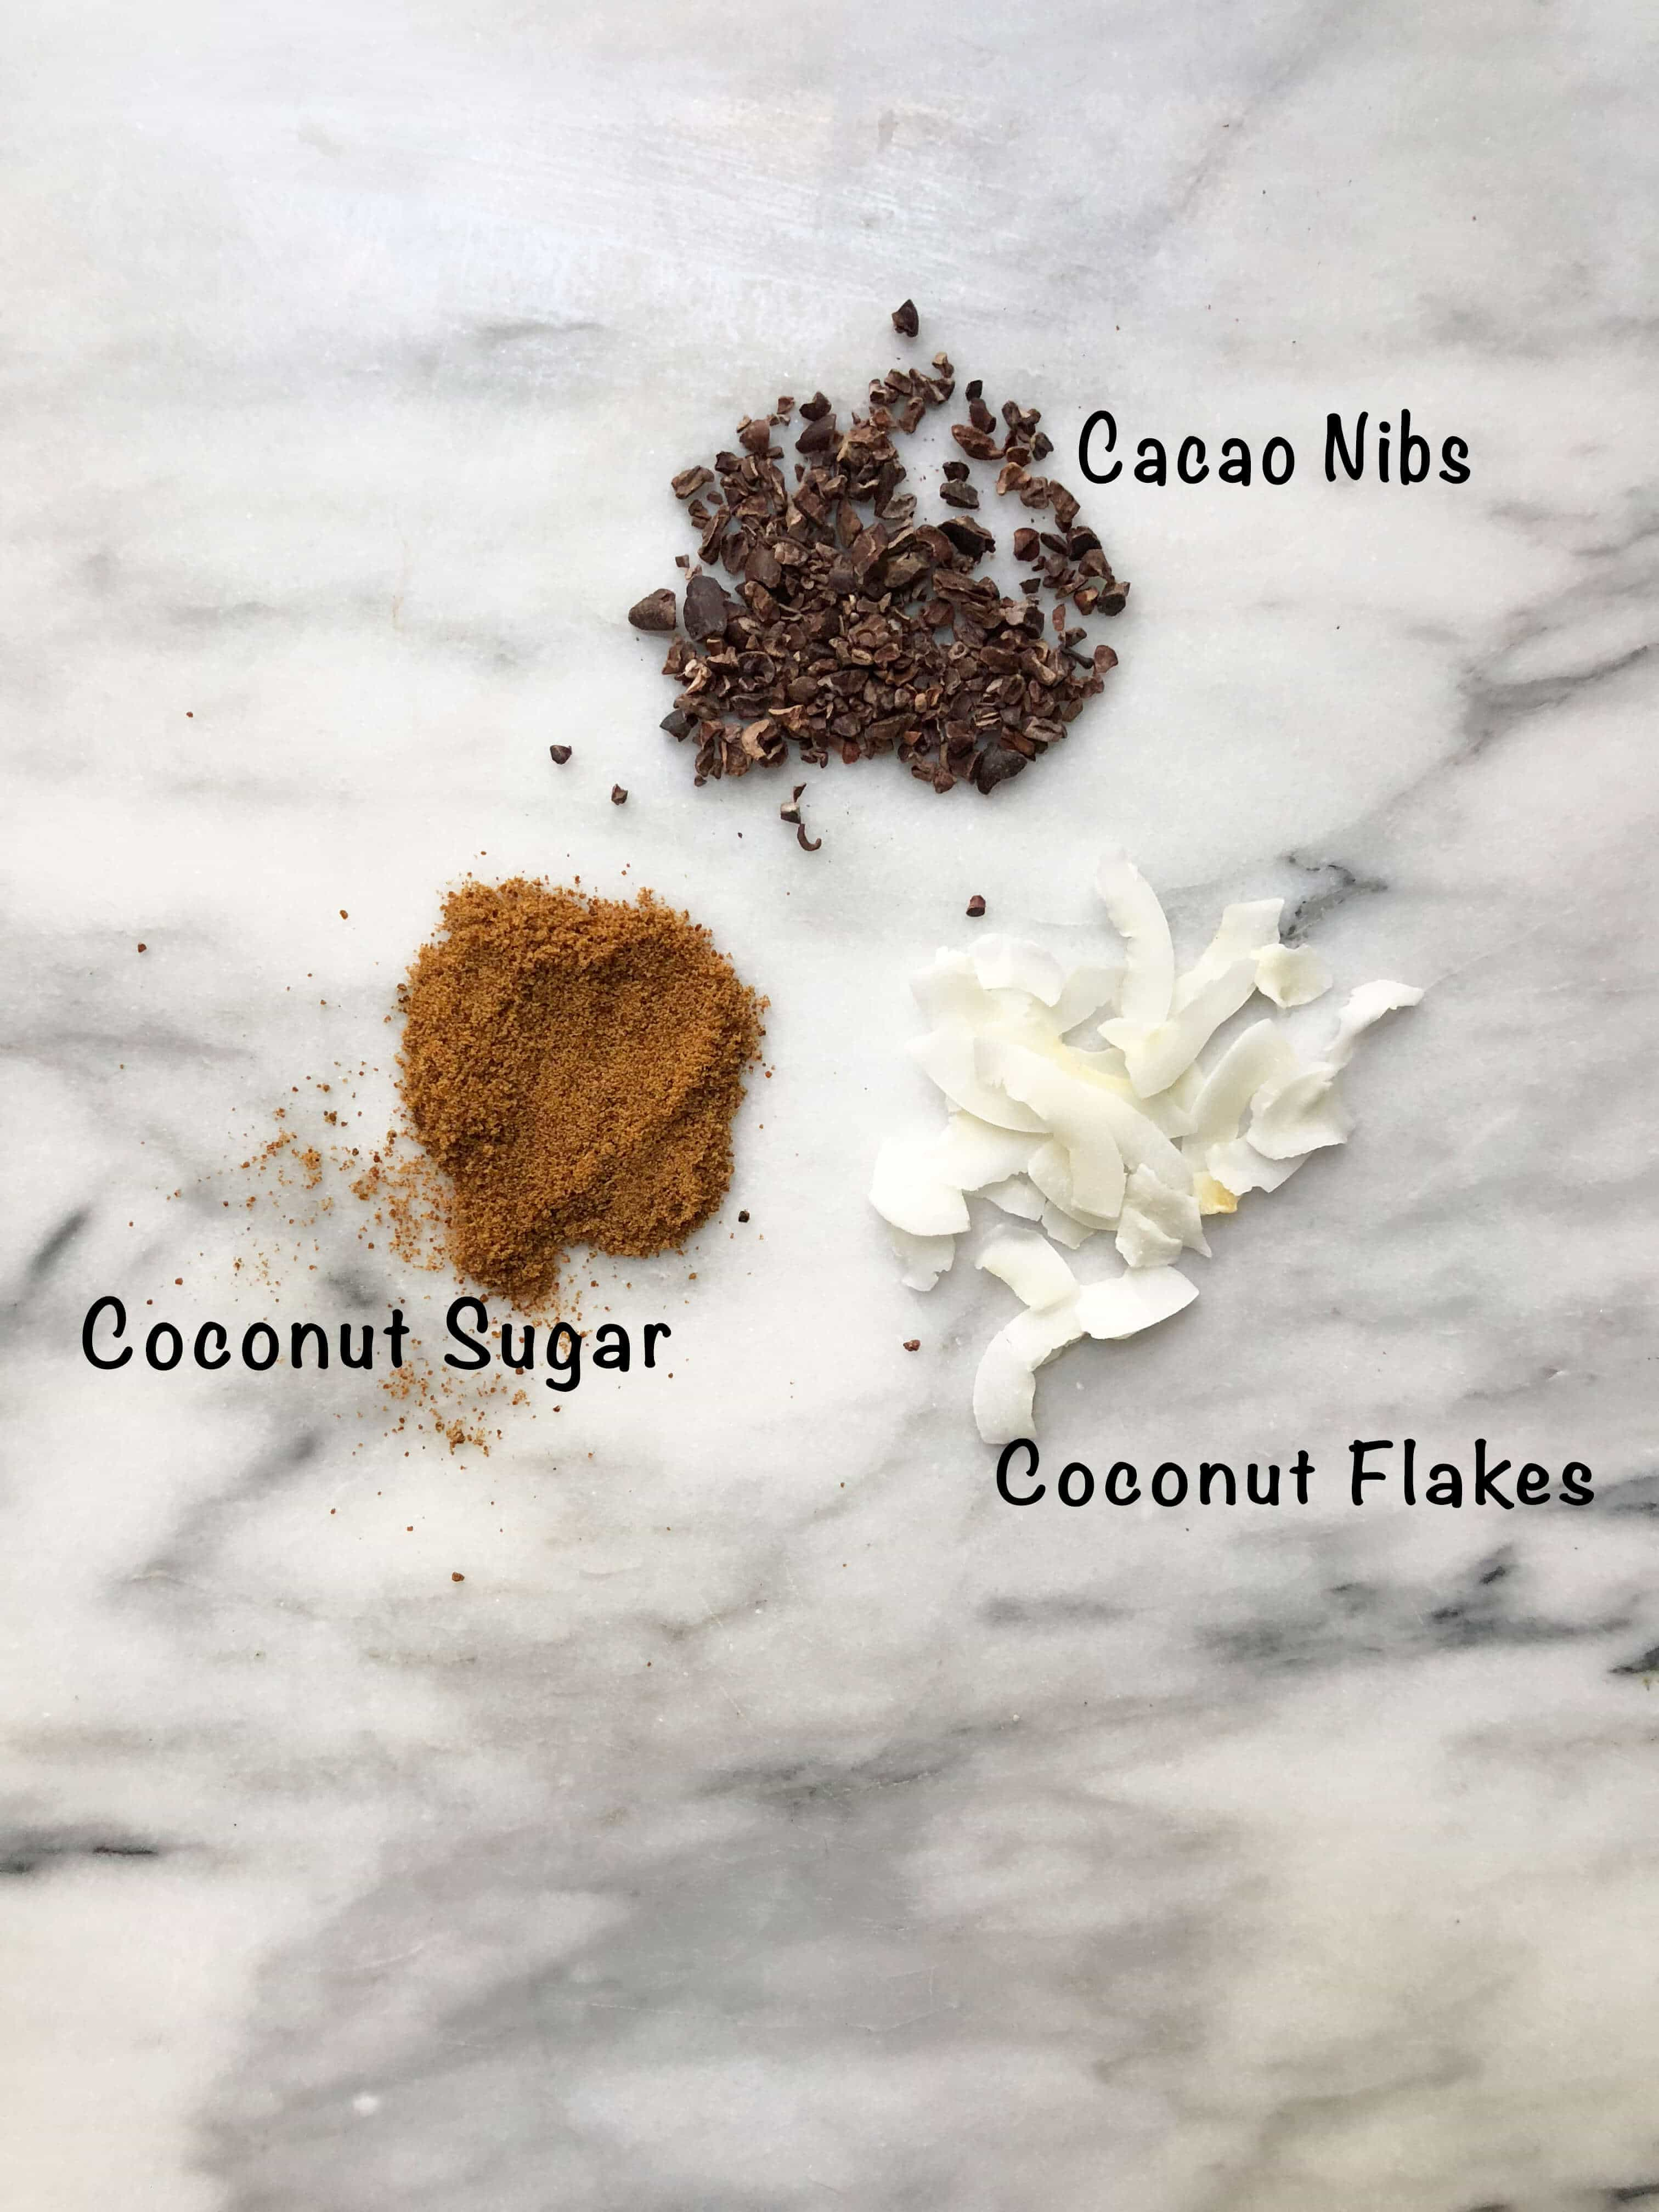 3 Ingredient Chocolate Coconut Butter. Super easy to make and it's vegan! #saveeandsavory #refinedsugarfree #glutenfree #coconut #chocolate #coconutbutter